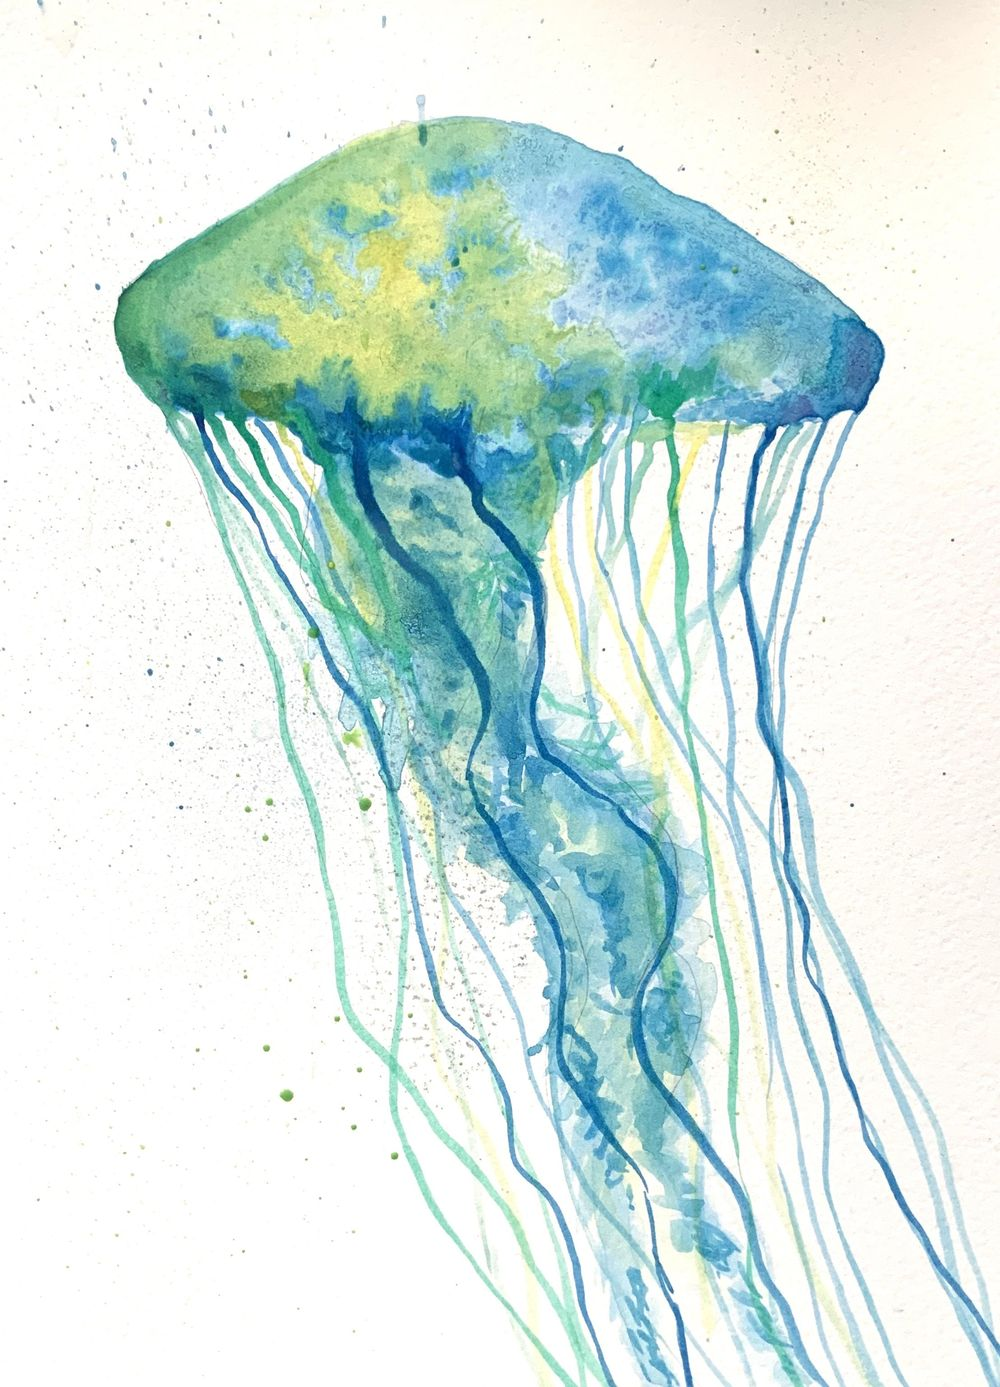 Jellyfish and galaxy - image 1 - student project